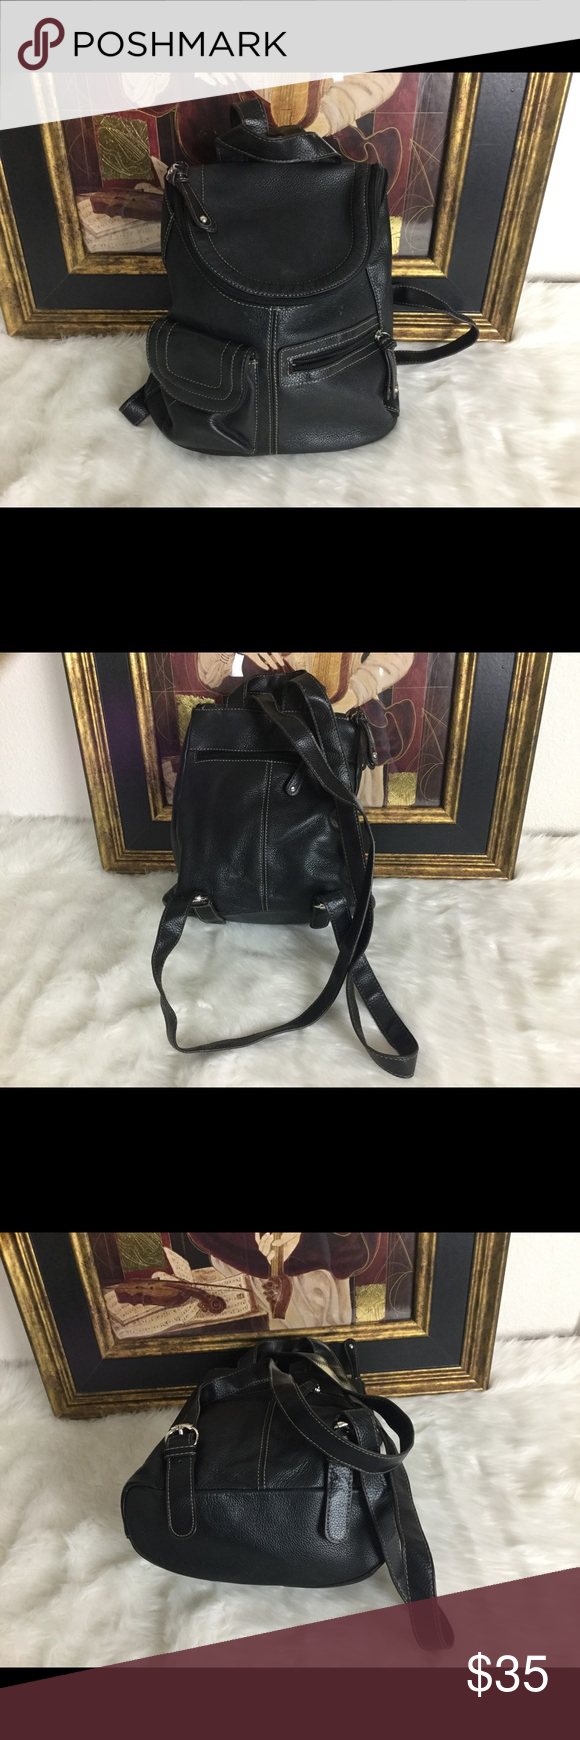 7554df0cec 🆕Listing. Tignanello Backpack purse. ❗